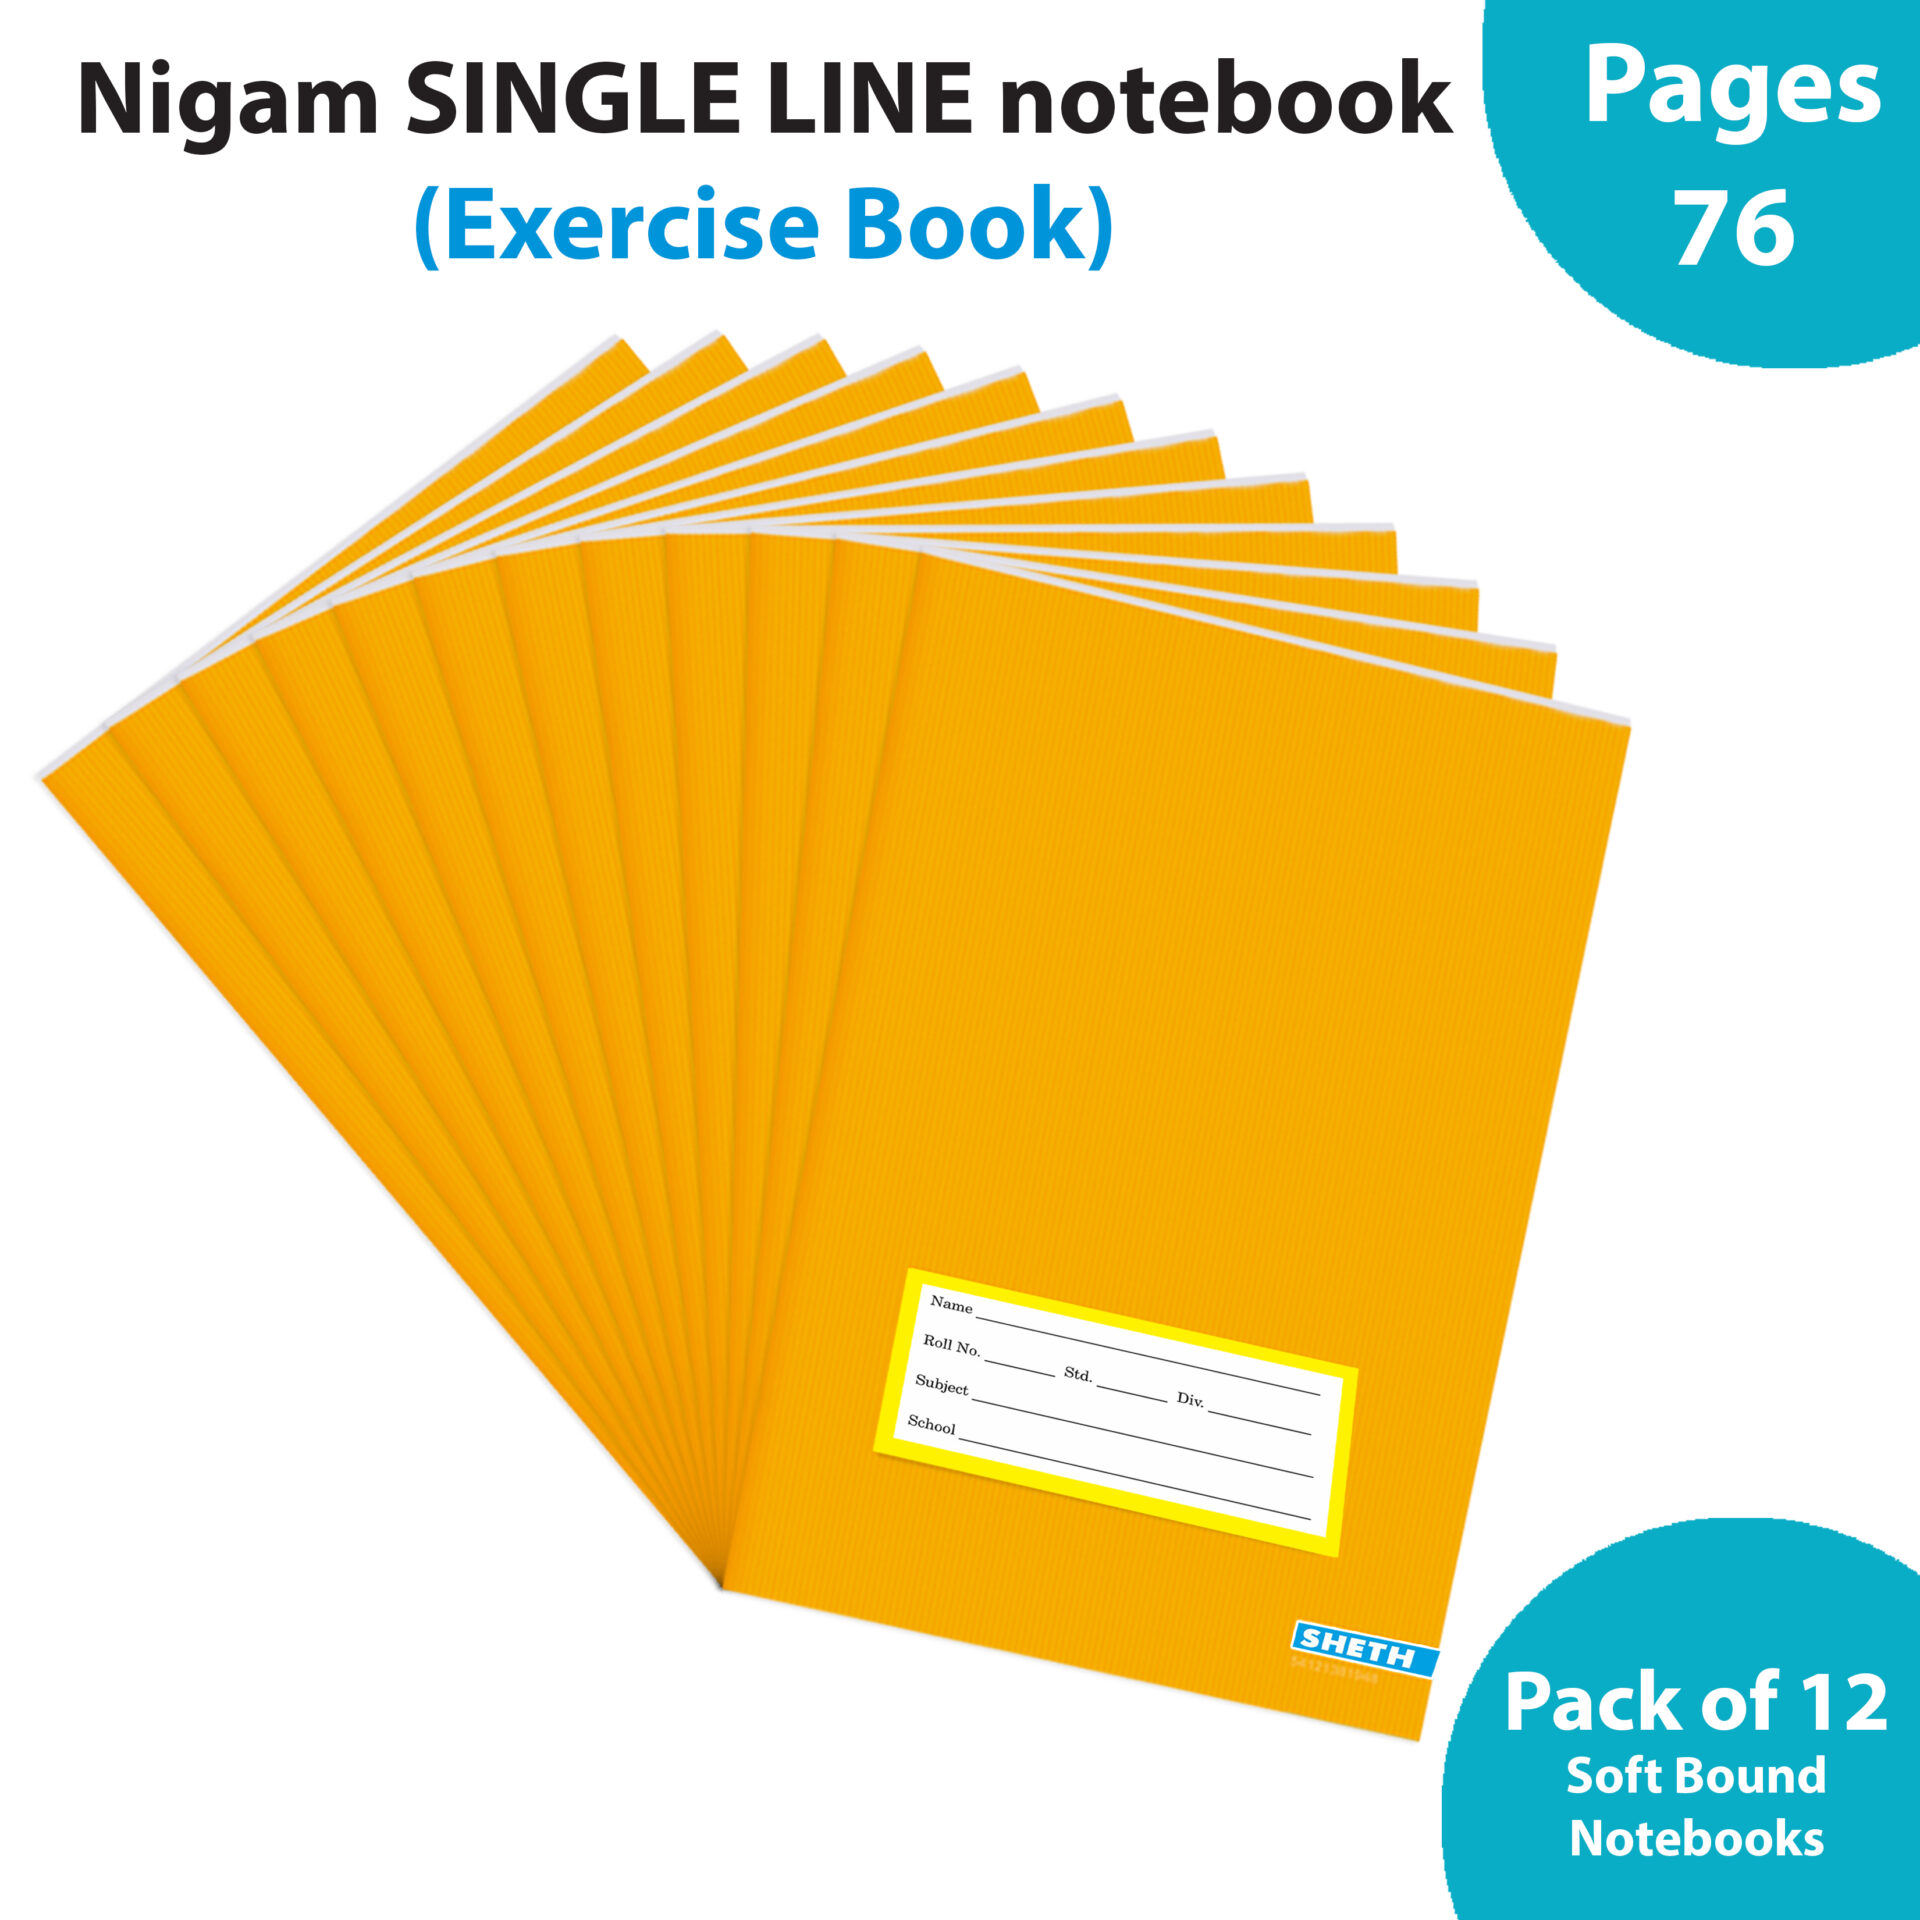 Nigam Single Line Long Note Book 76 Pages Soft Bound Set of 12 1